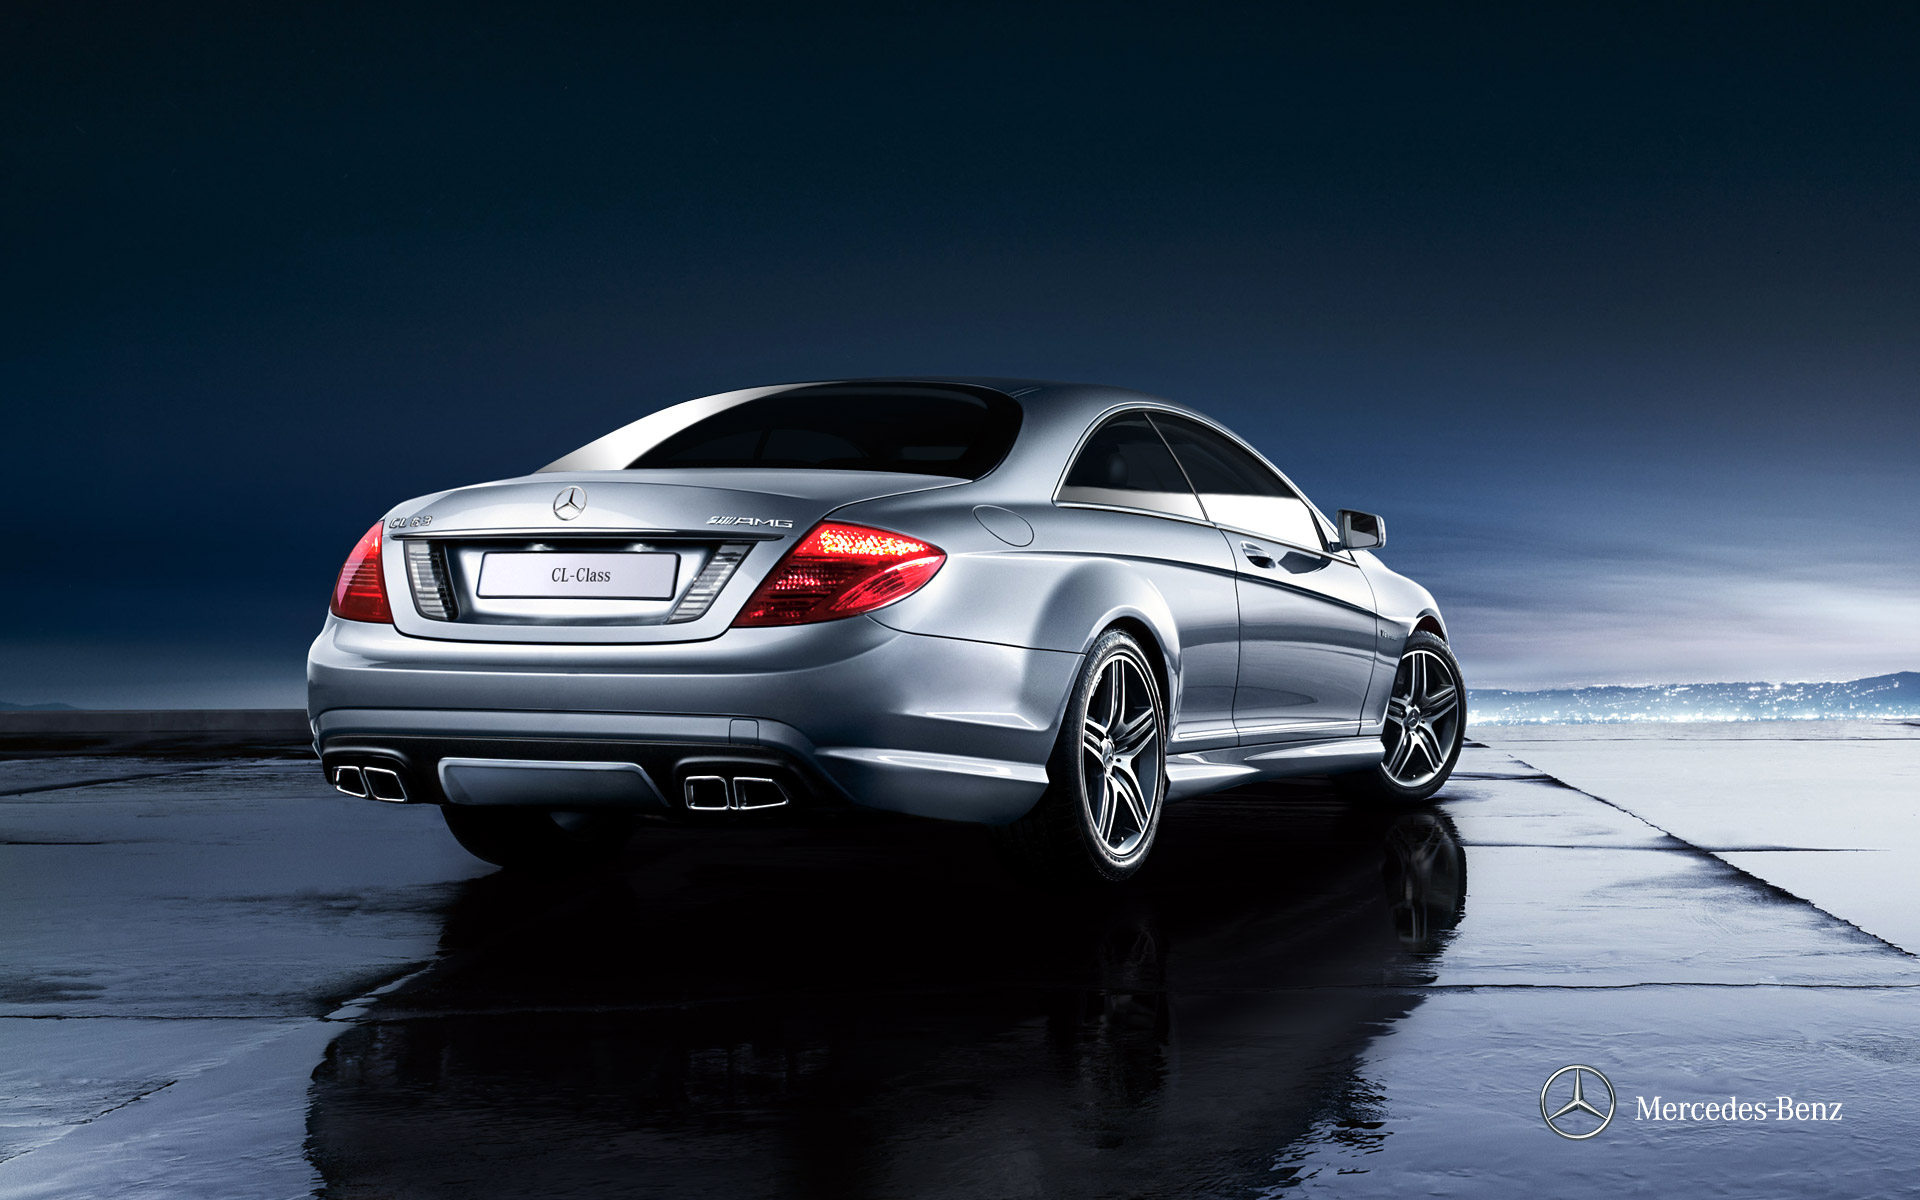 Mercedes benz cl class 2012 cl 63 amg in uae new car for Mercedes benz cl 63 amg price